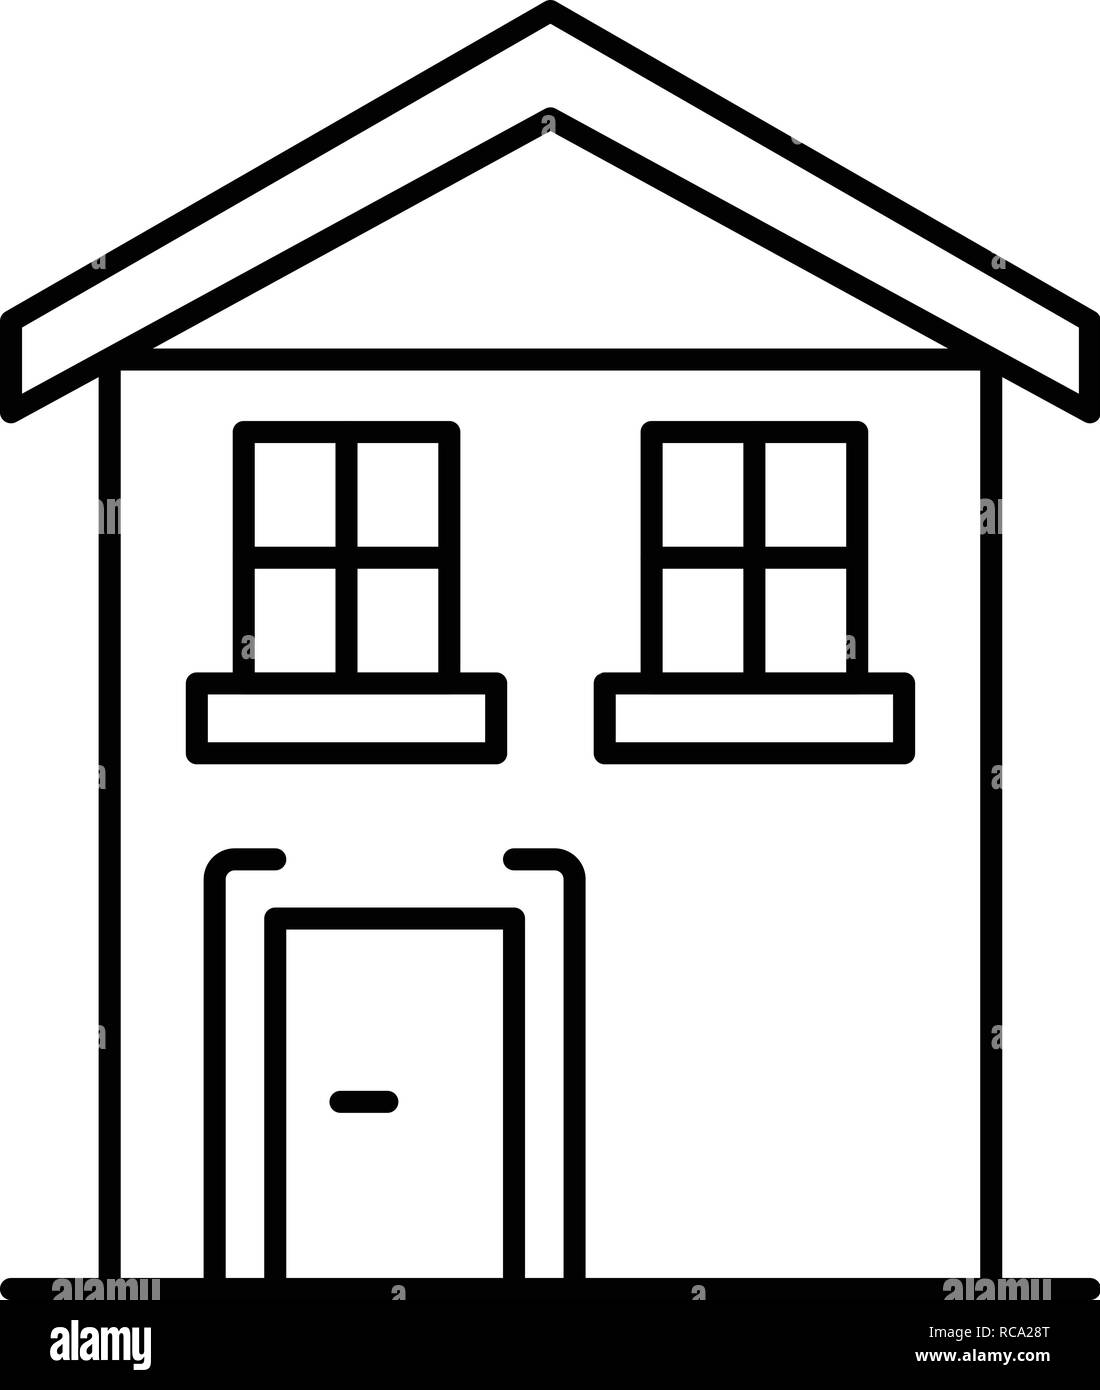 Pension house icon, outline style - Stock Image